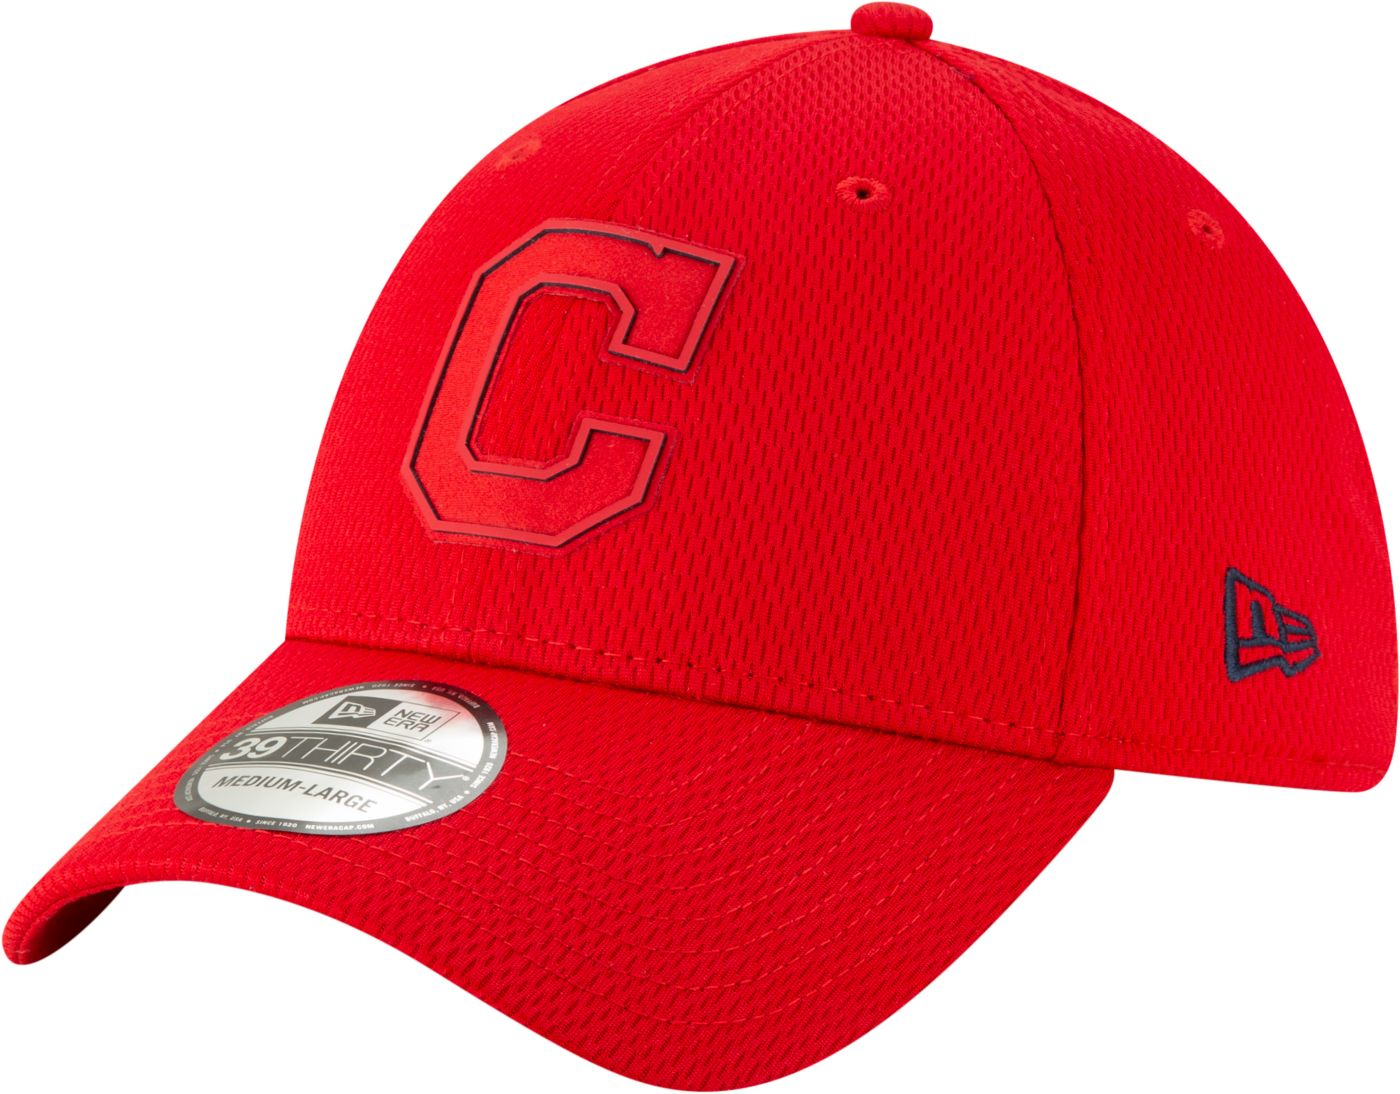 New Era Men's Cleveland Indians 59Fifty Clubhouse Red Fitted Hat